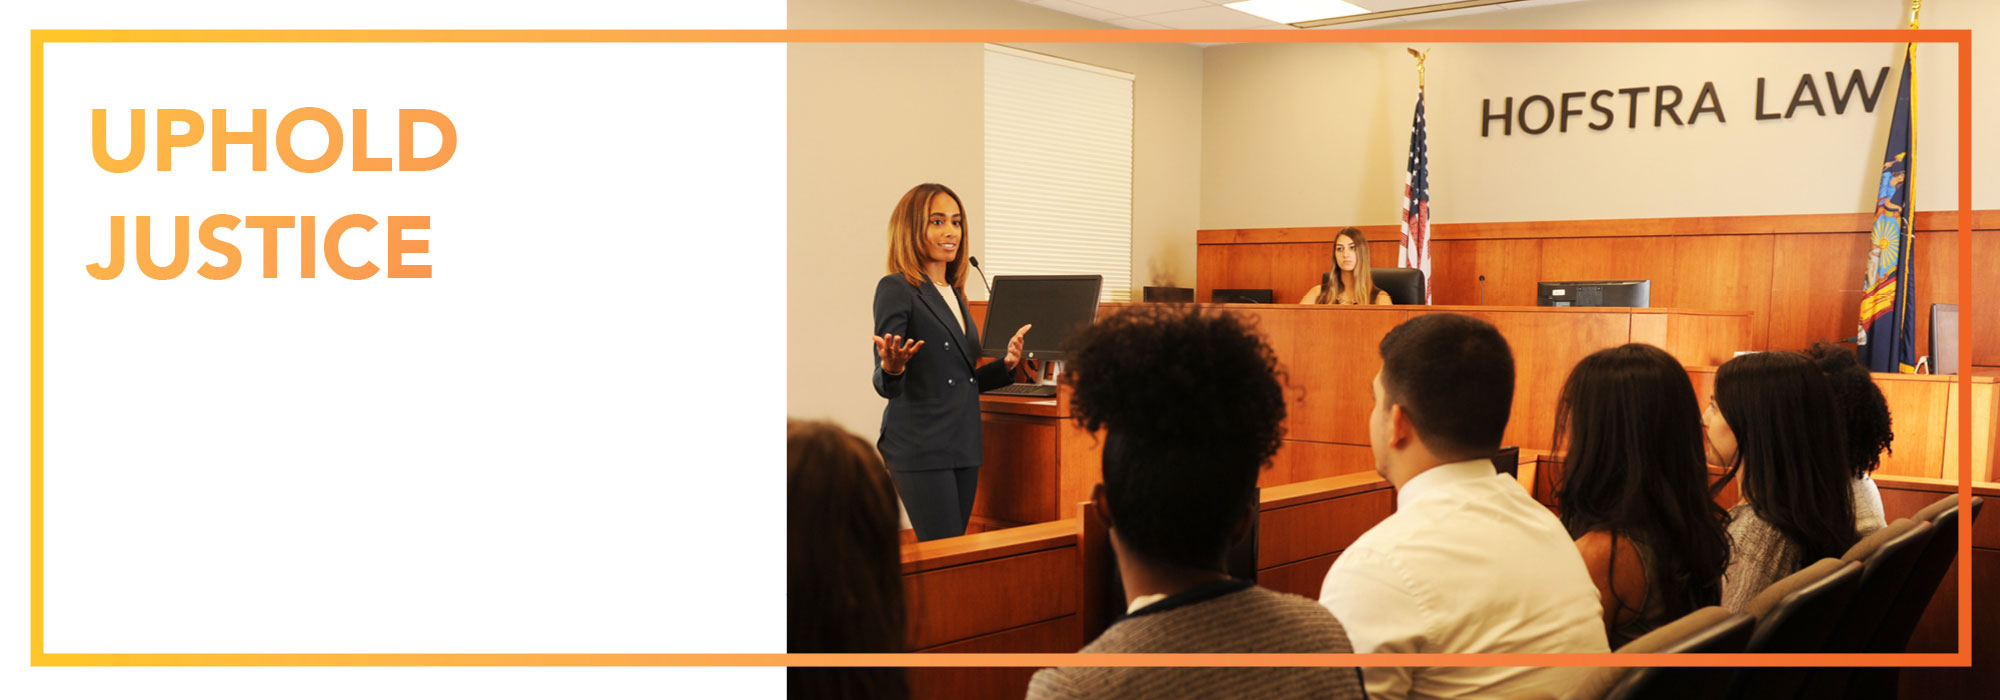 Uphold Justice. With a photo of law students talking in our Moot Courtroom.